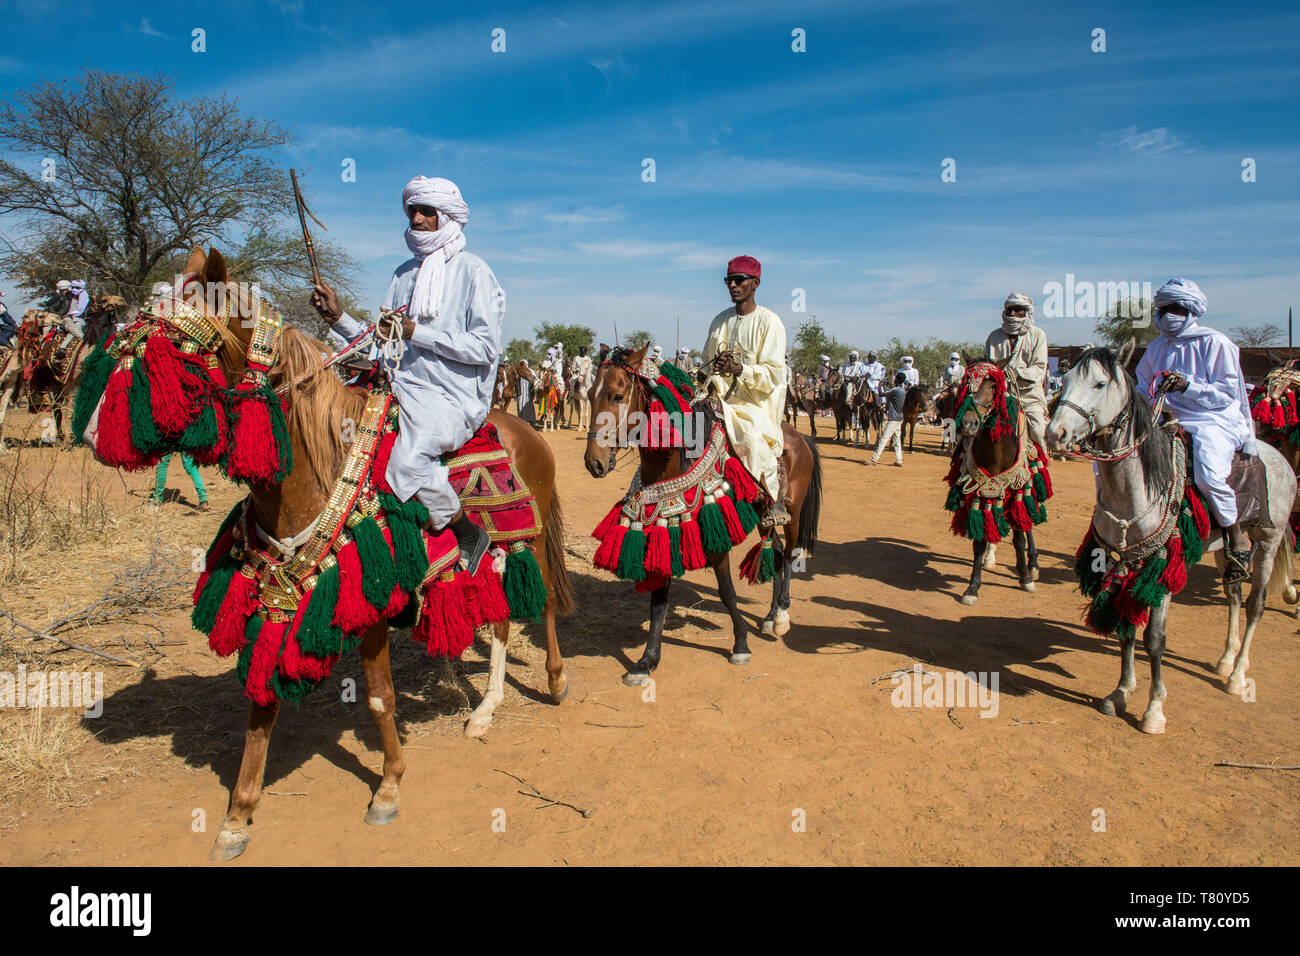 Colourful horse and riders at a Tribal festival, Sahel, Chad, Africa - Stock Image